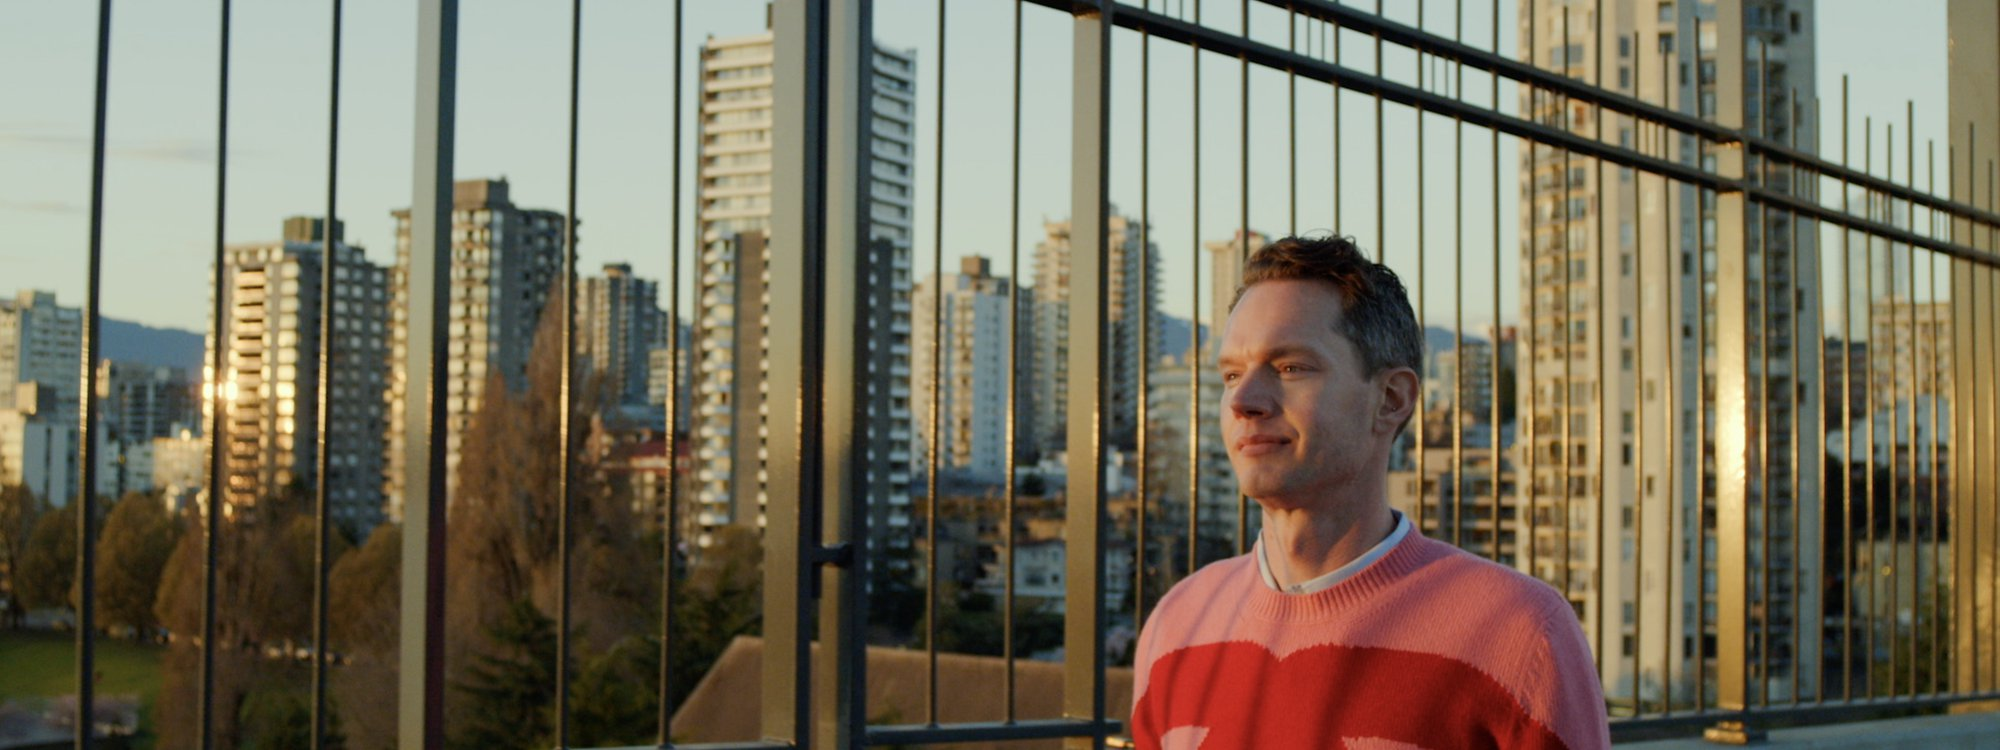 Lyle XOX as Lyle Reimer walking through Vancouver, BC